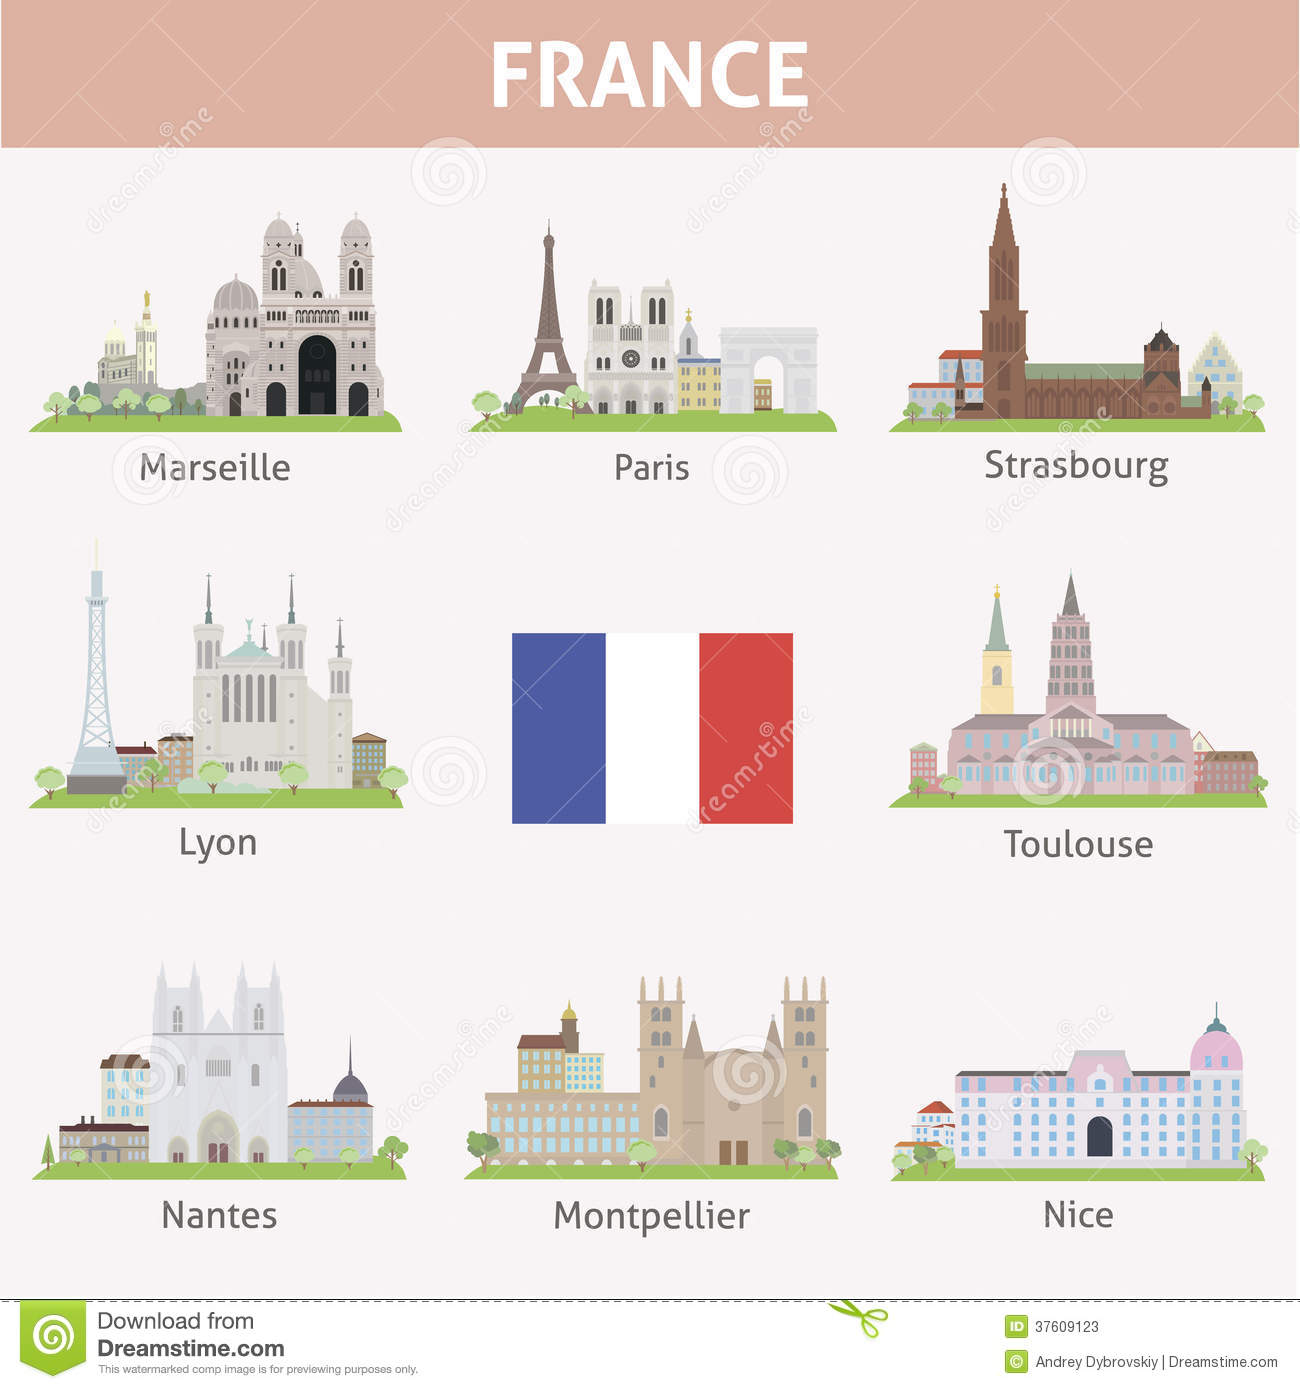 Travelling From Nice To Toulouse Roadtrip: France. Symbols Of Cities Stock Photos